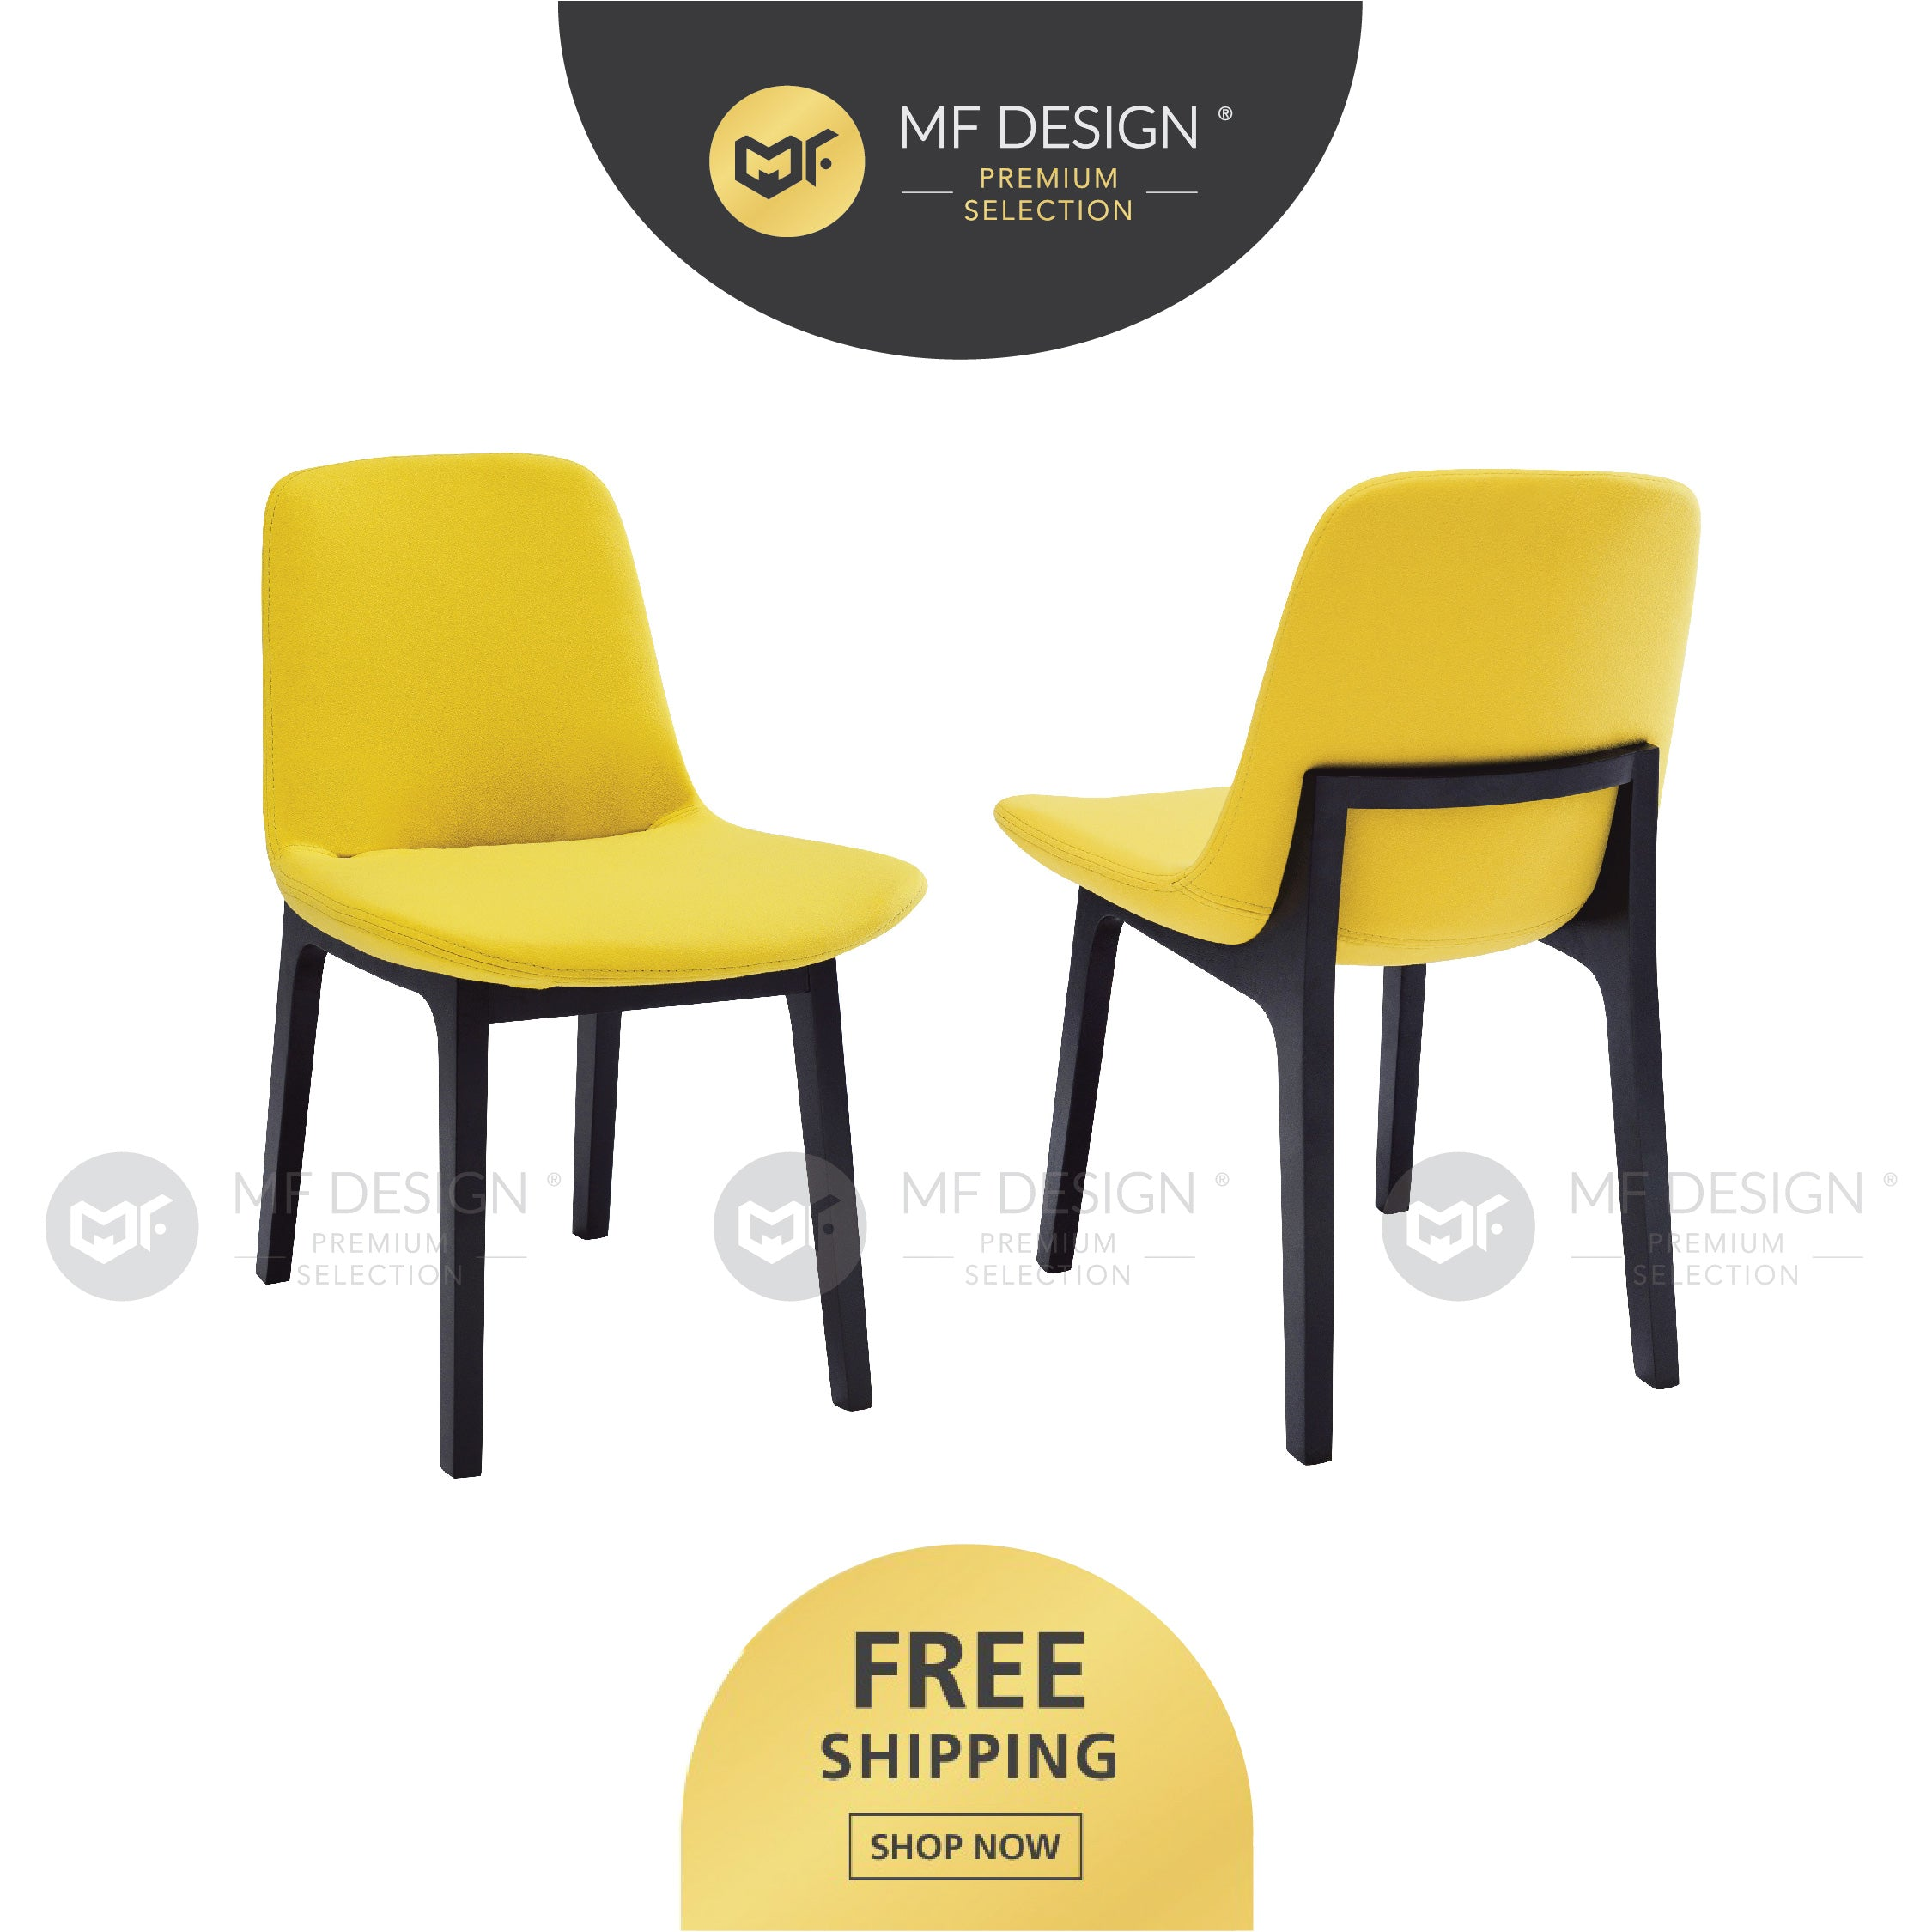 MFD Premium Amelia Dining Chair / Wooden Chair / Solid Rubber Wood / Kerusi Makan Kayu Getah / Living Room